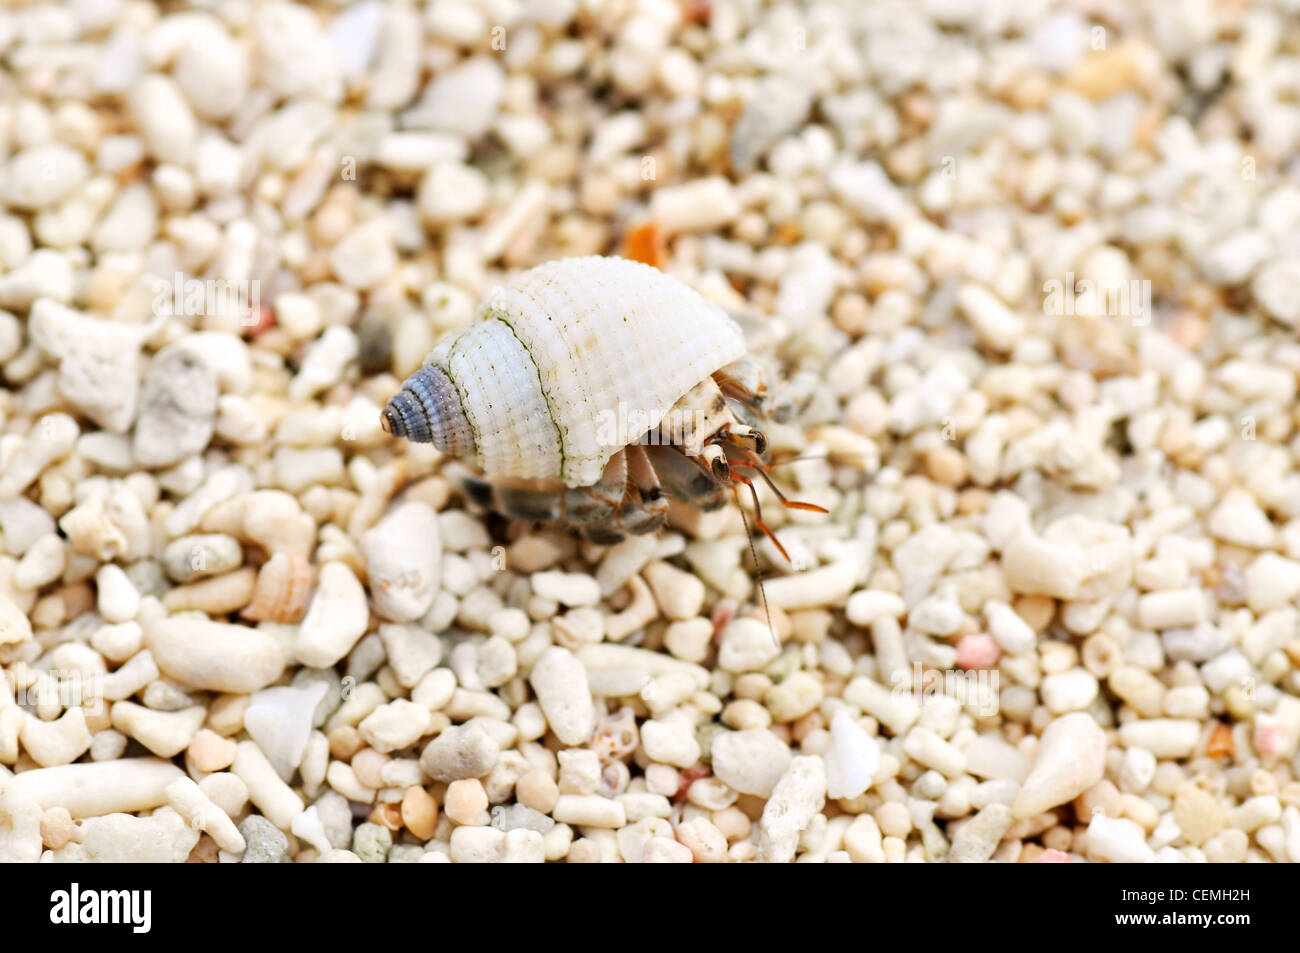 Tiny little hermit crab on the beach - Stock Image